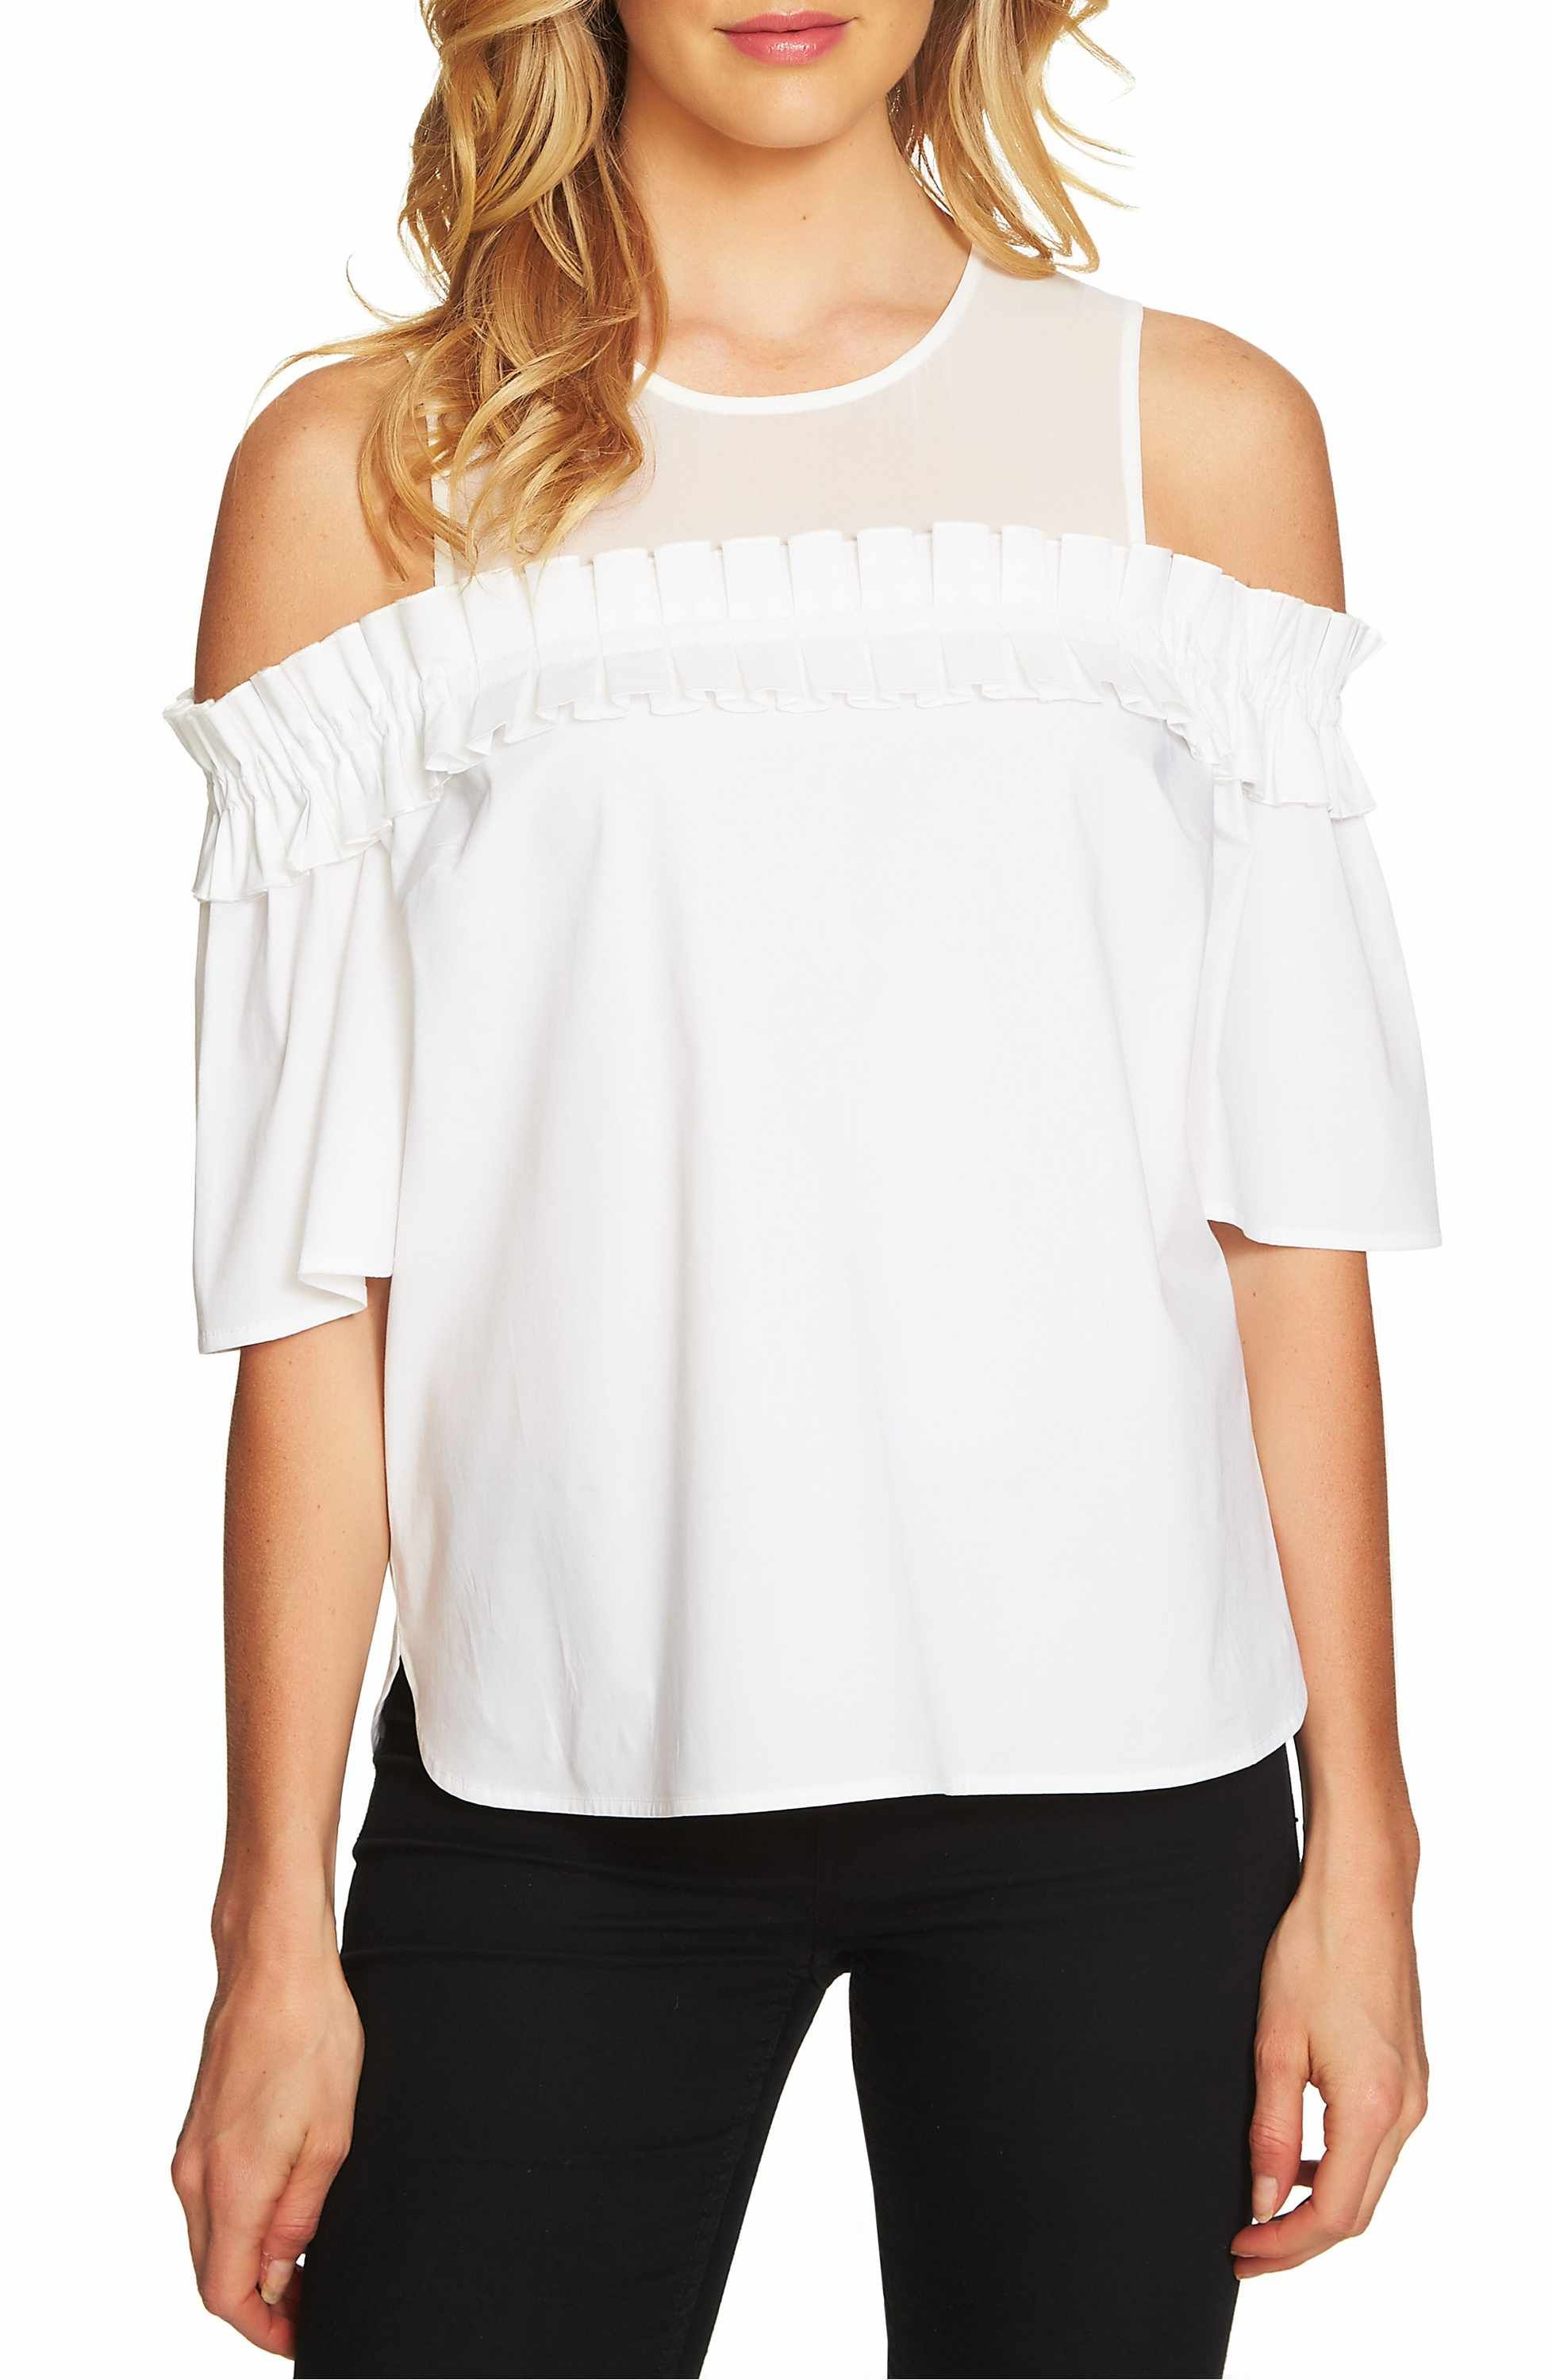 45f3d7150bbea2 Main Image - CeCe Chiffon Yoke Cold Shoulder Top | Have to be in my ...